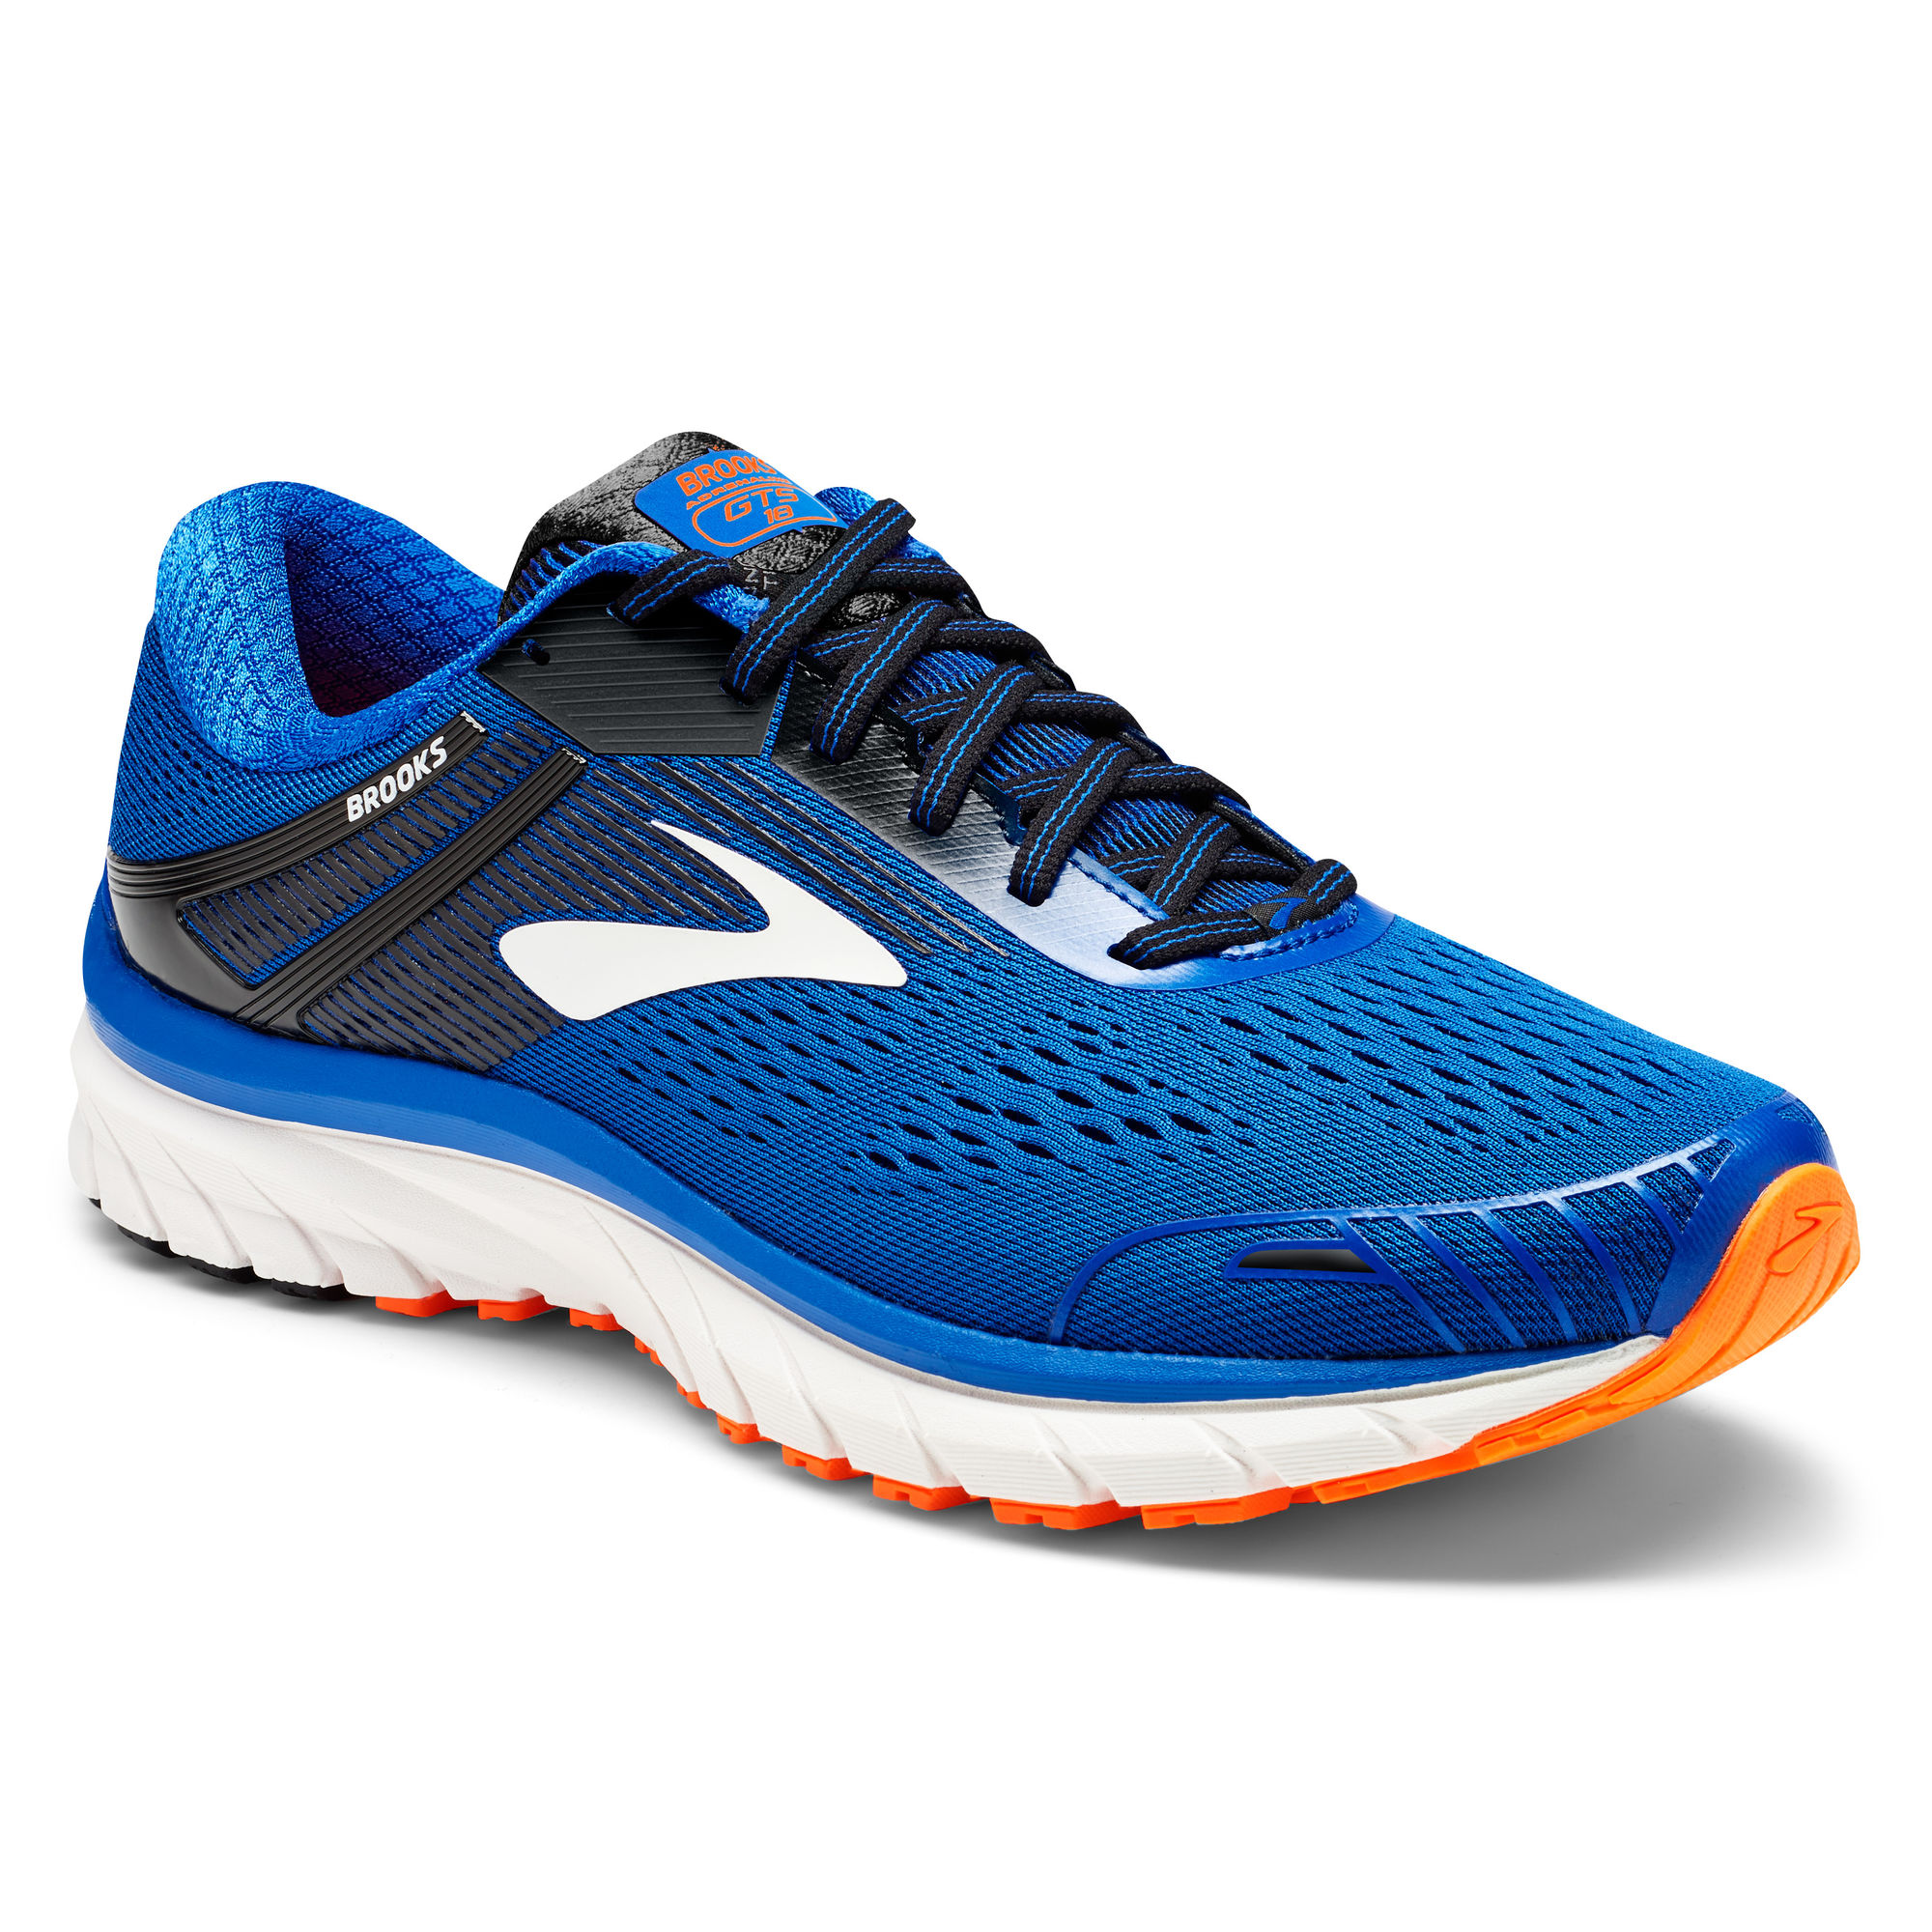 Brooks Adrenaline 18 D in Blau